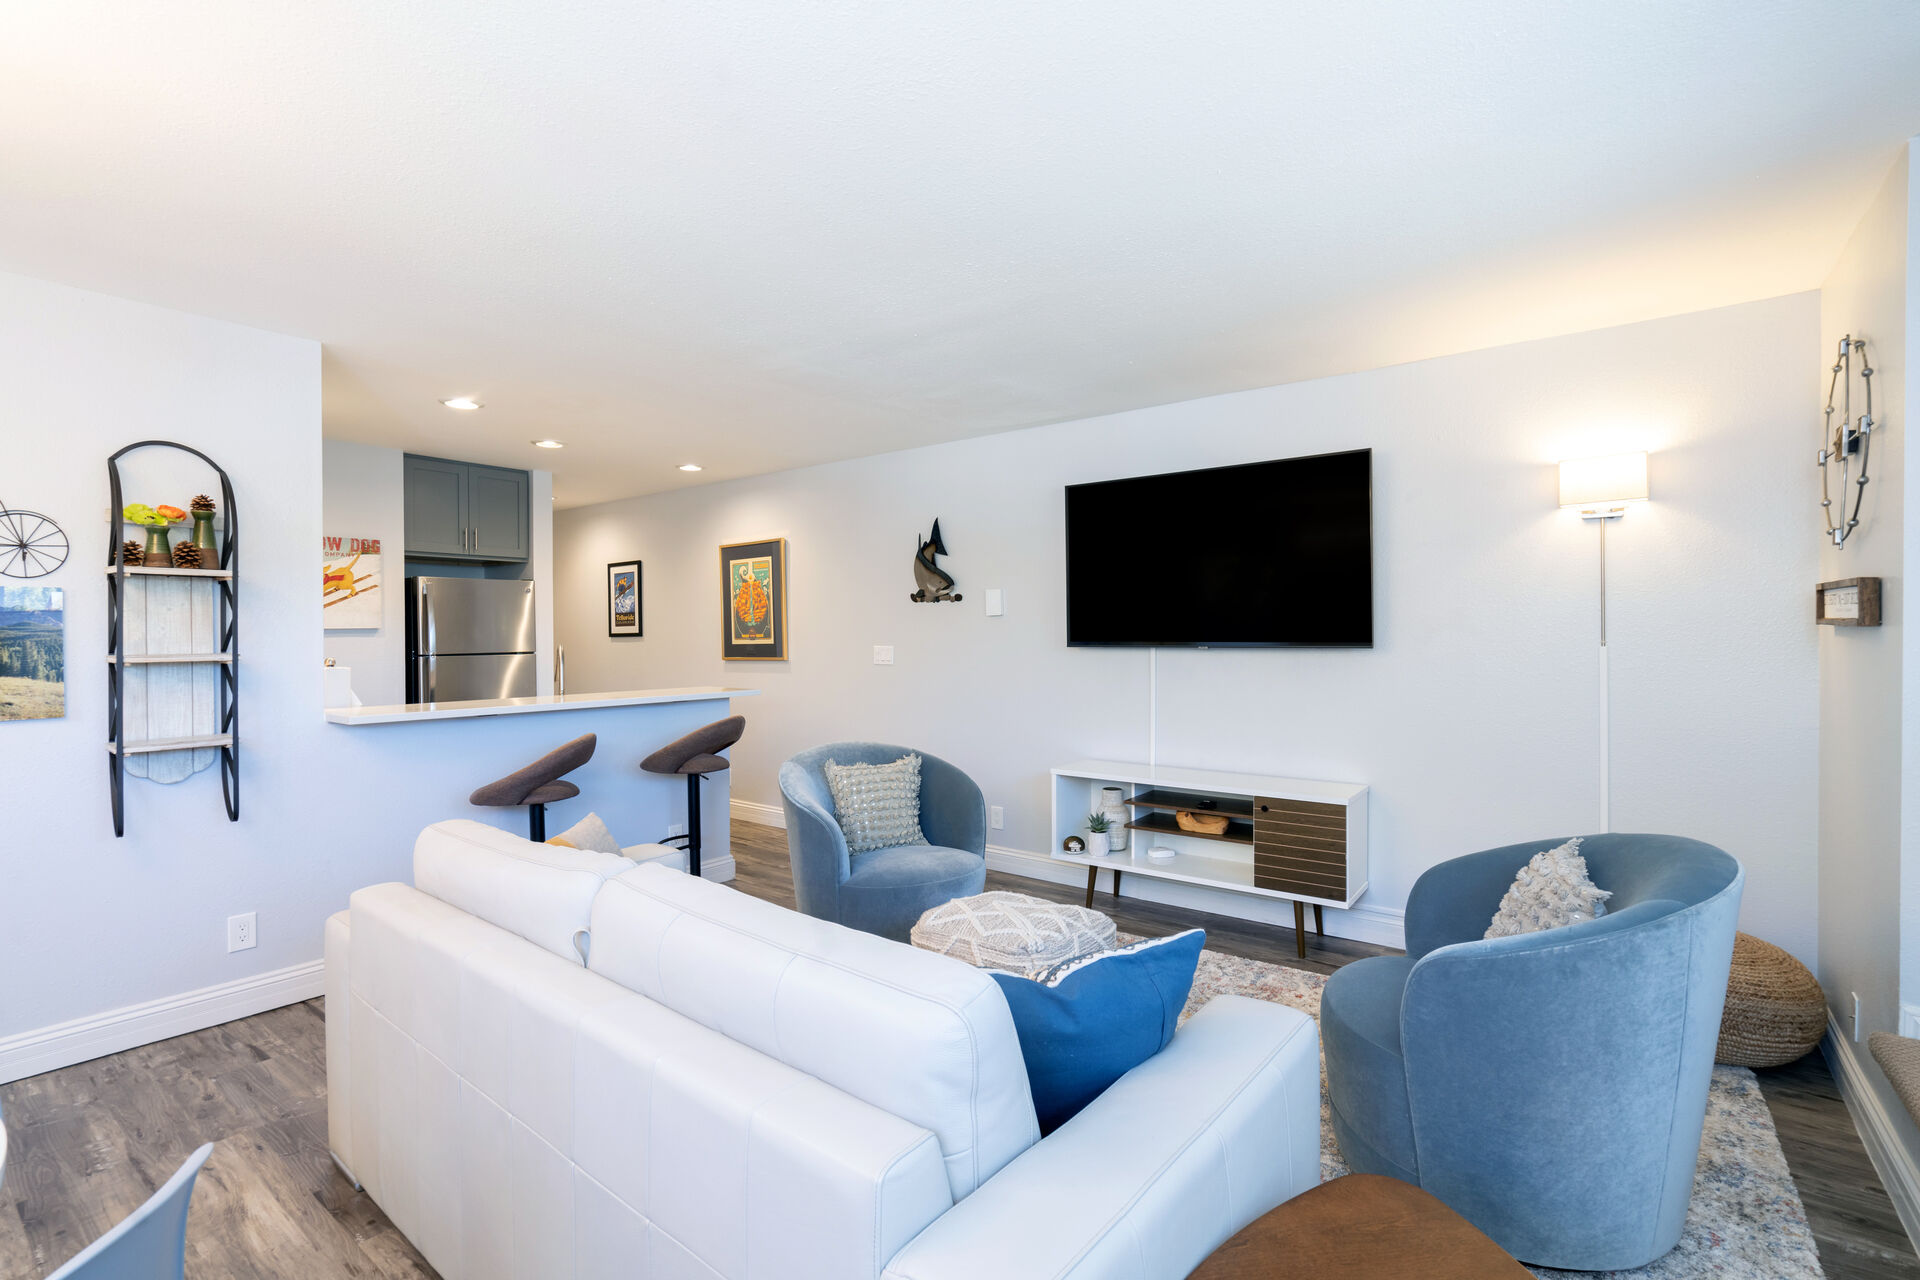 Living room area seating 5 with large flatscreen TV